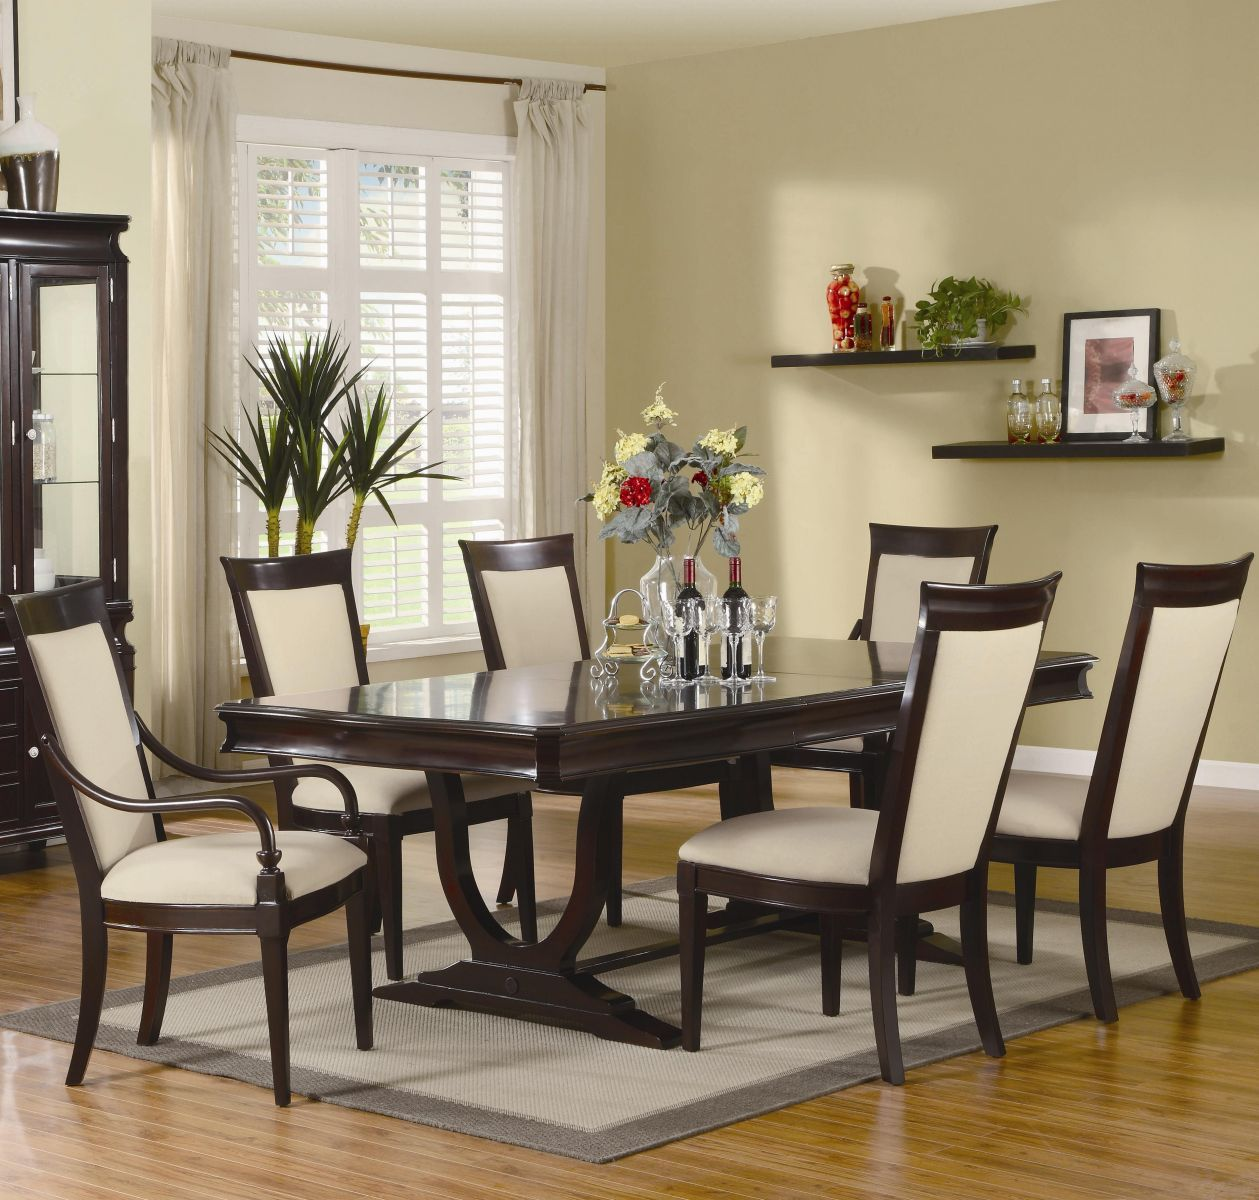 Coaster Dining Room Set  Price Upon Request Call (631) 742-1351 for Best Price Guarantee  Dinette Sets New York , Dinette Sets Long Island , Dining Room Sets New York , Dining Room Sets Long Island, Dining Room Chairs Long Island The handsome Beverly dinin